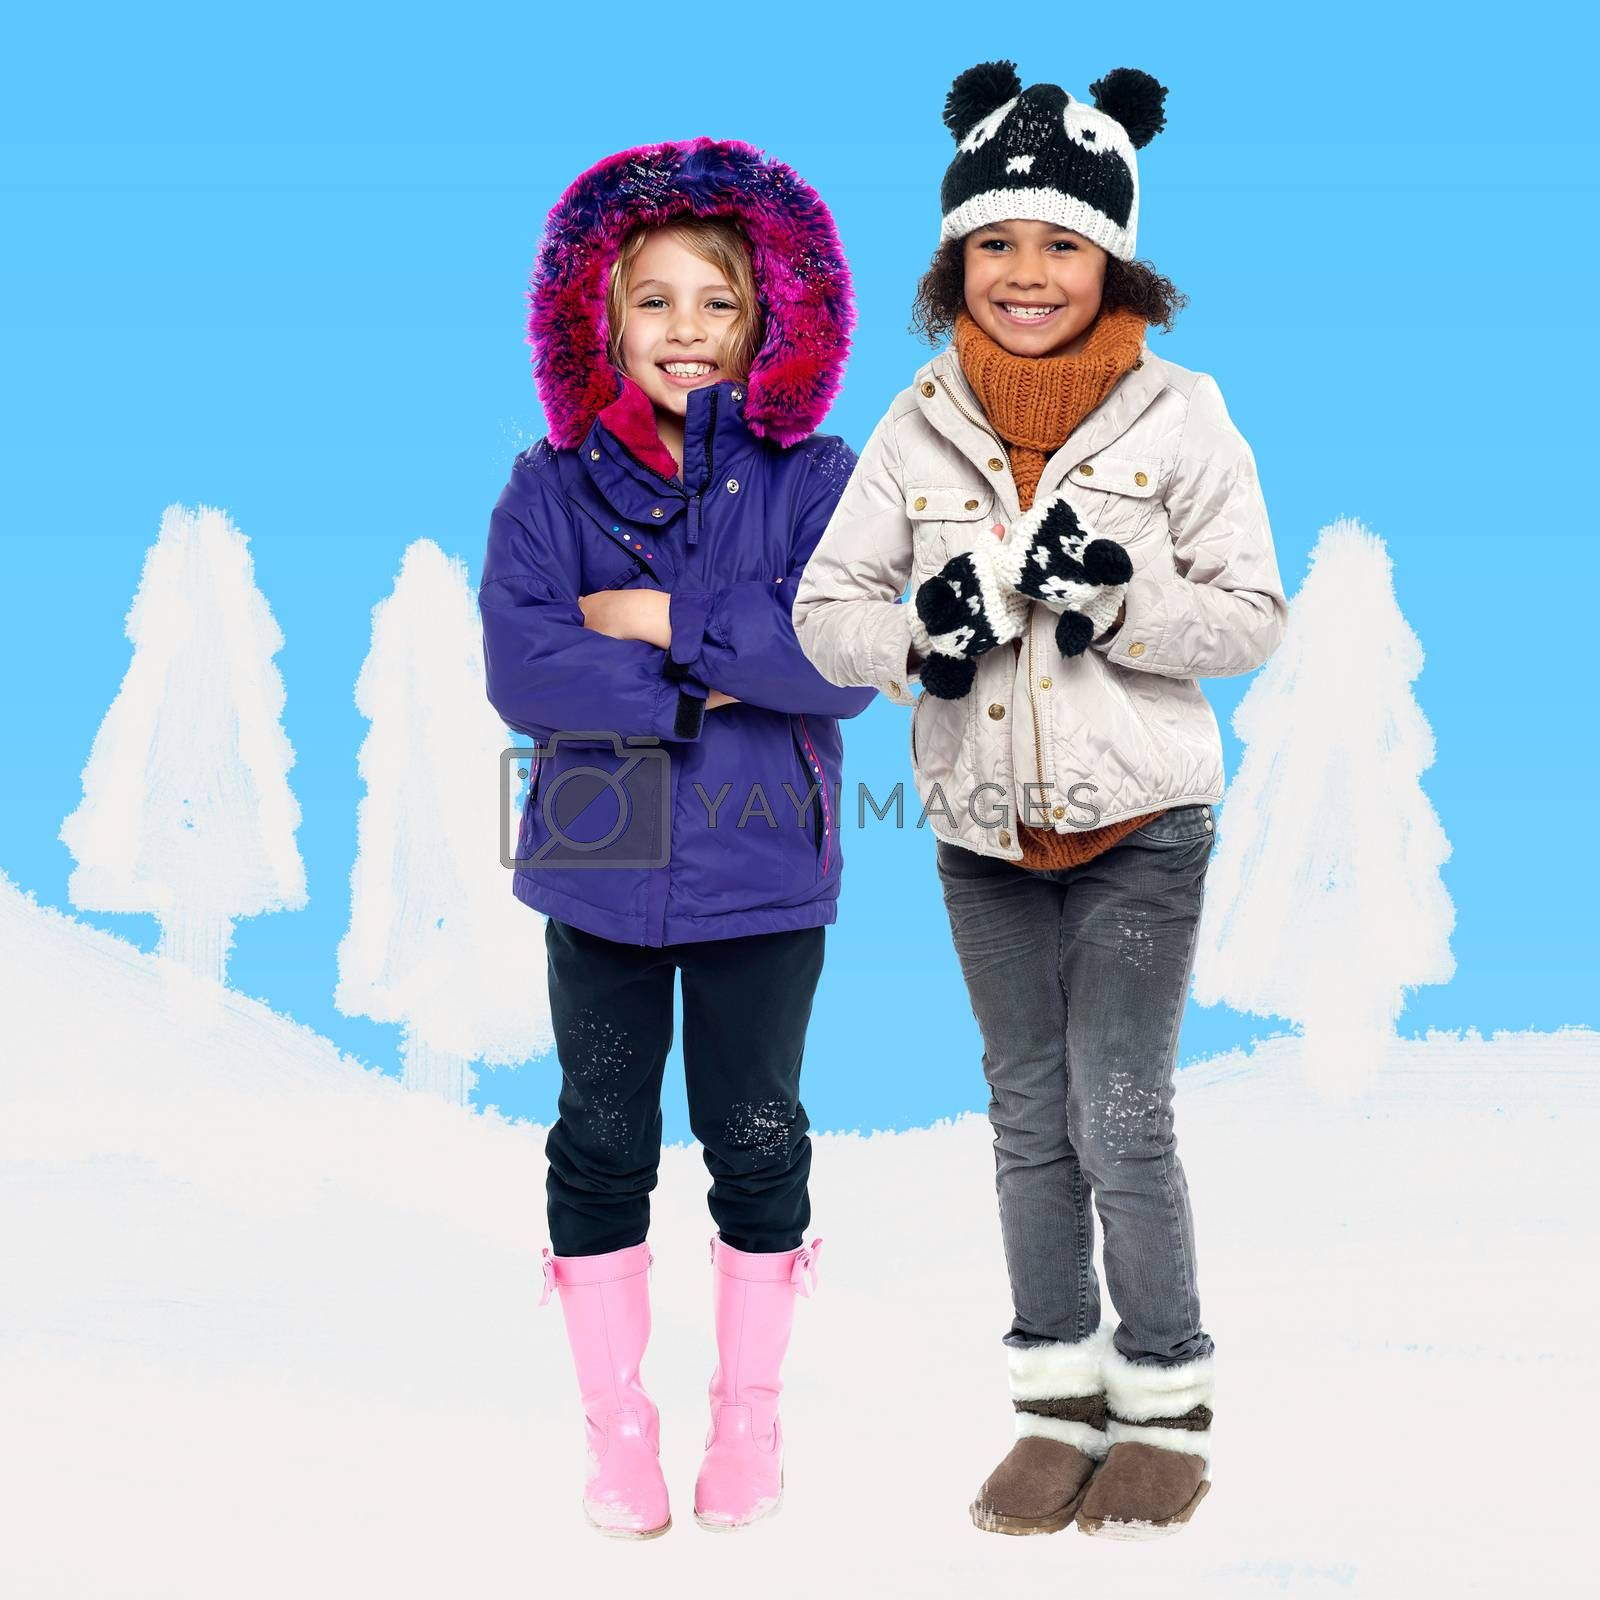 Two kids in winter wear against snow background